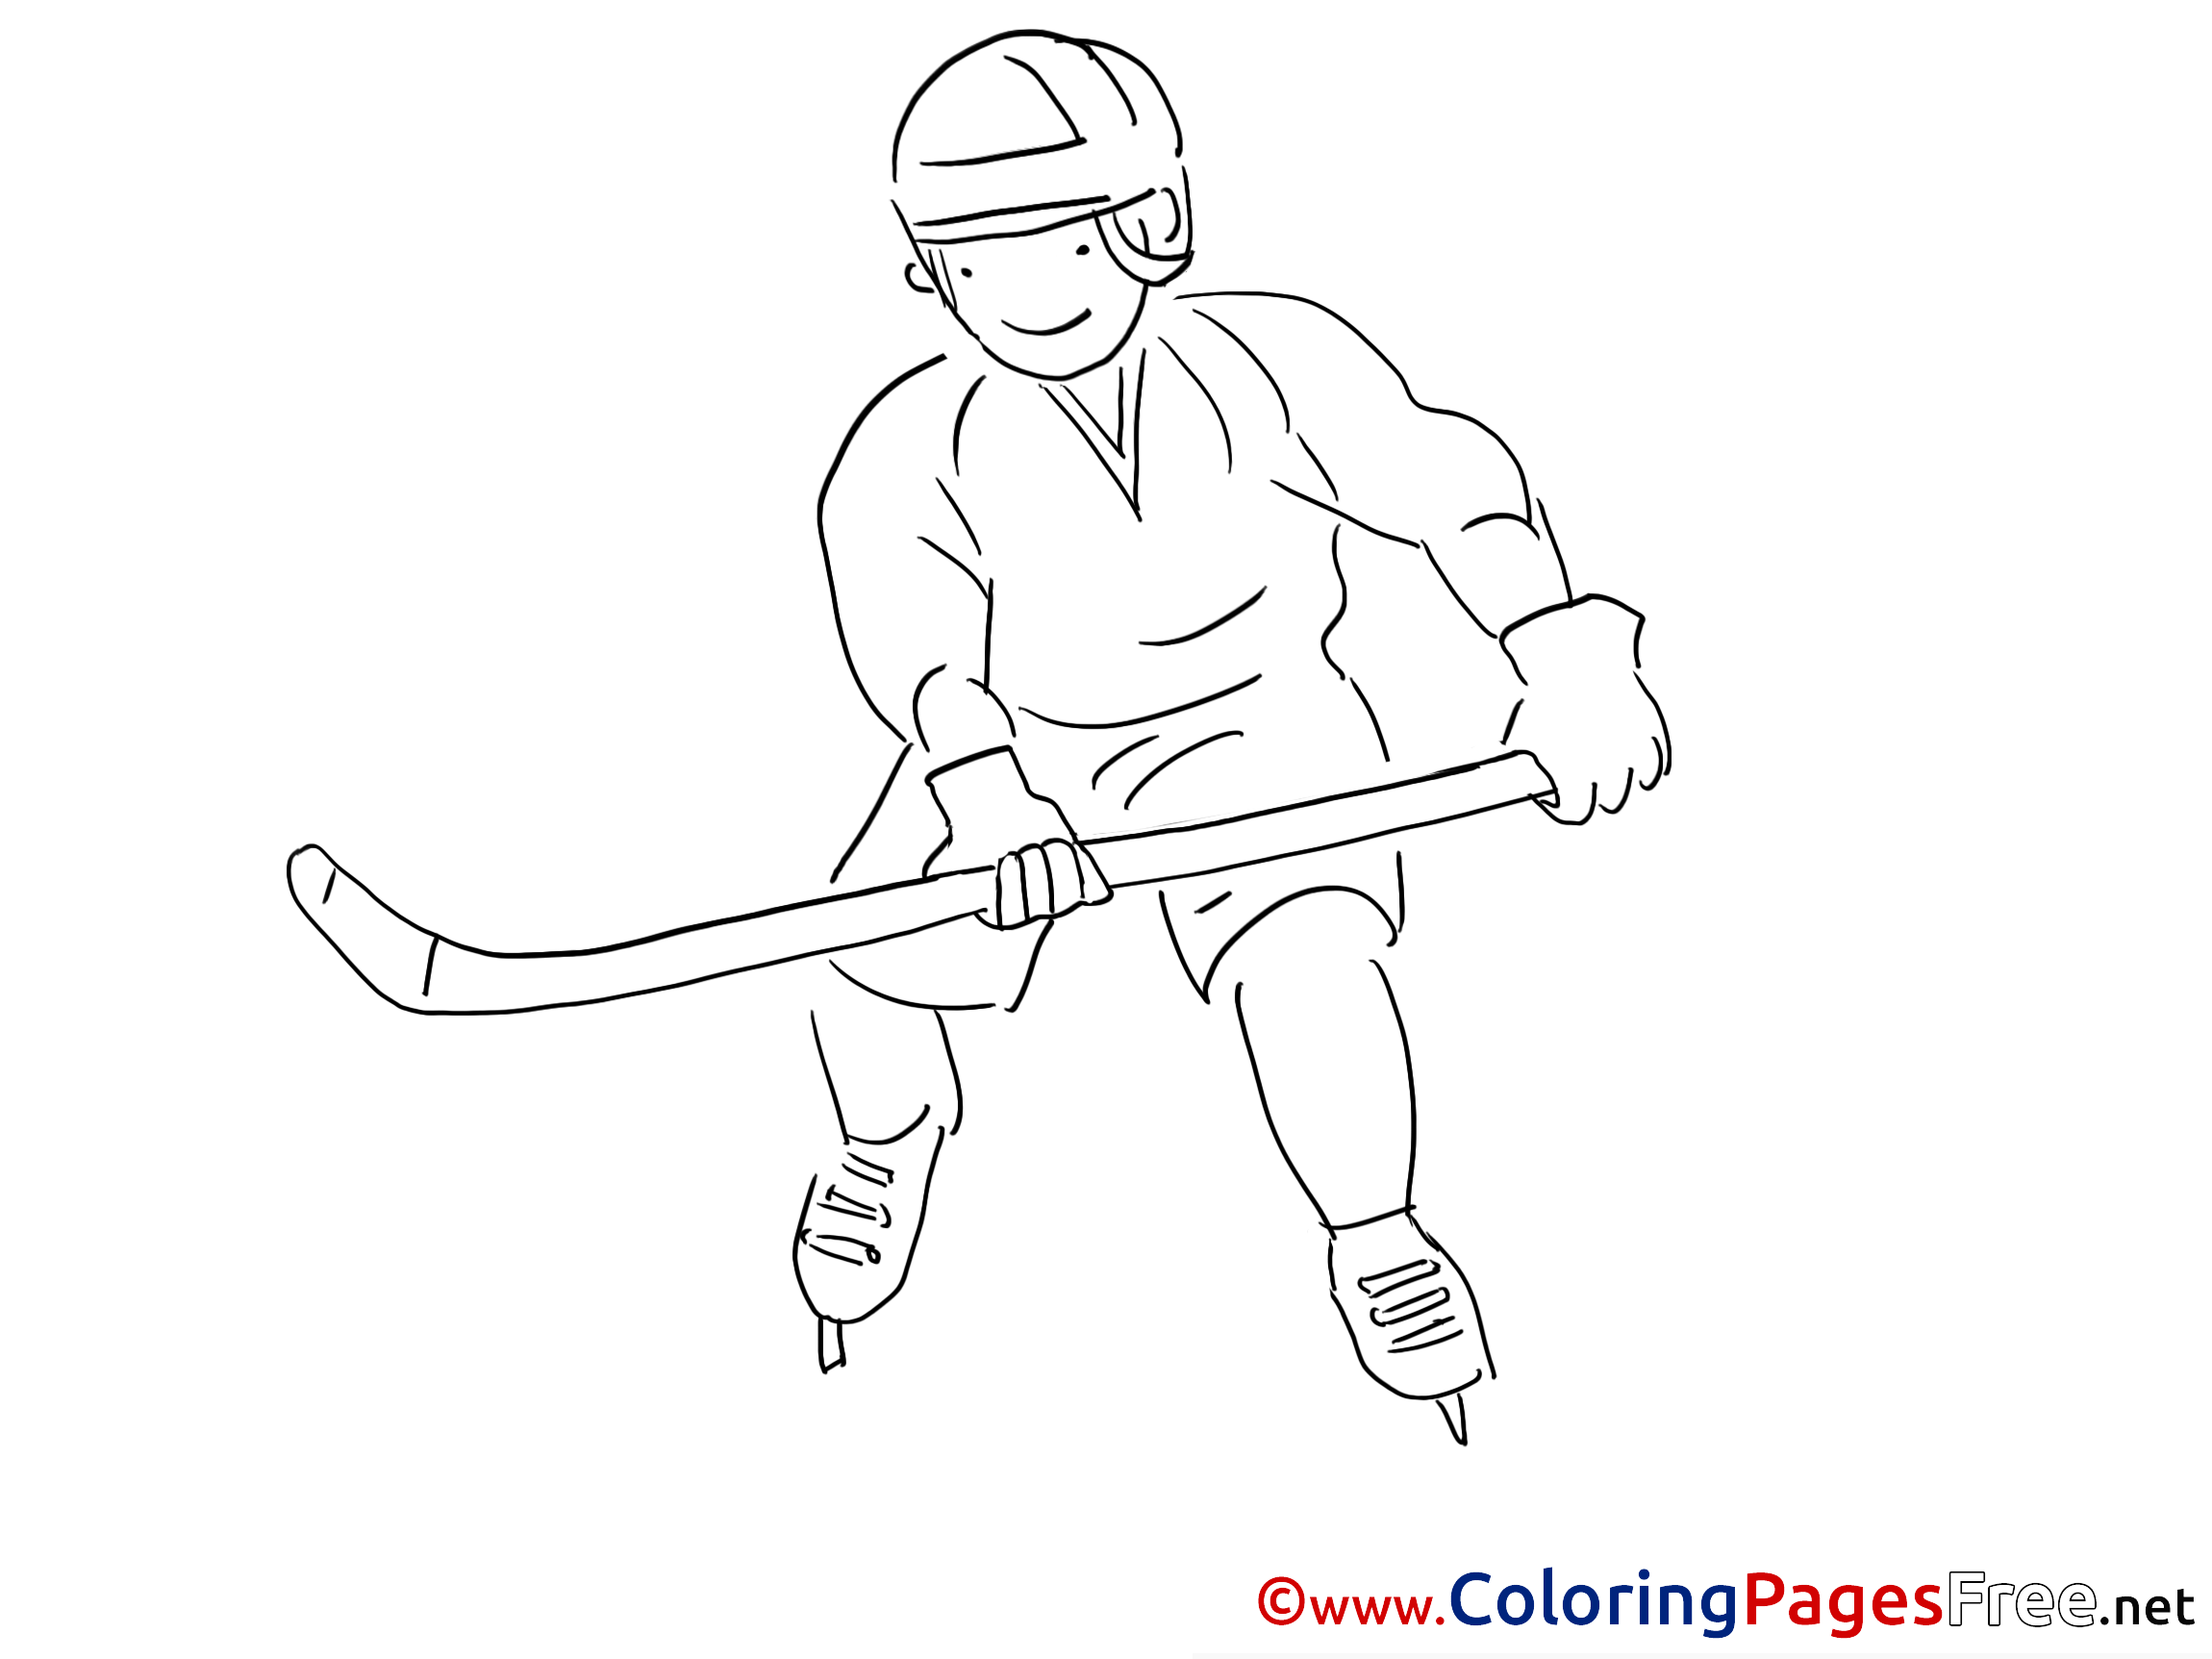 Free Hockey Coloring Pages - Coloring Home | 1725x2300